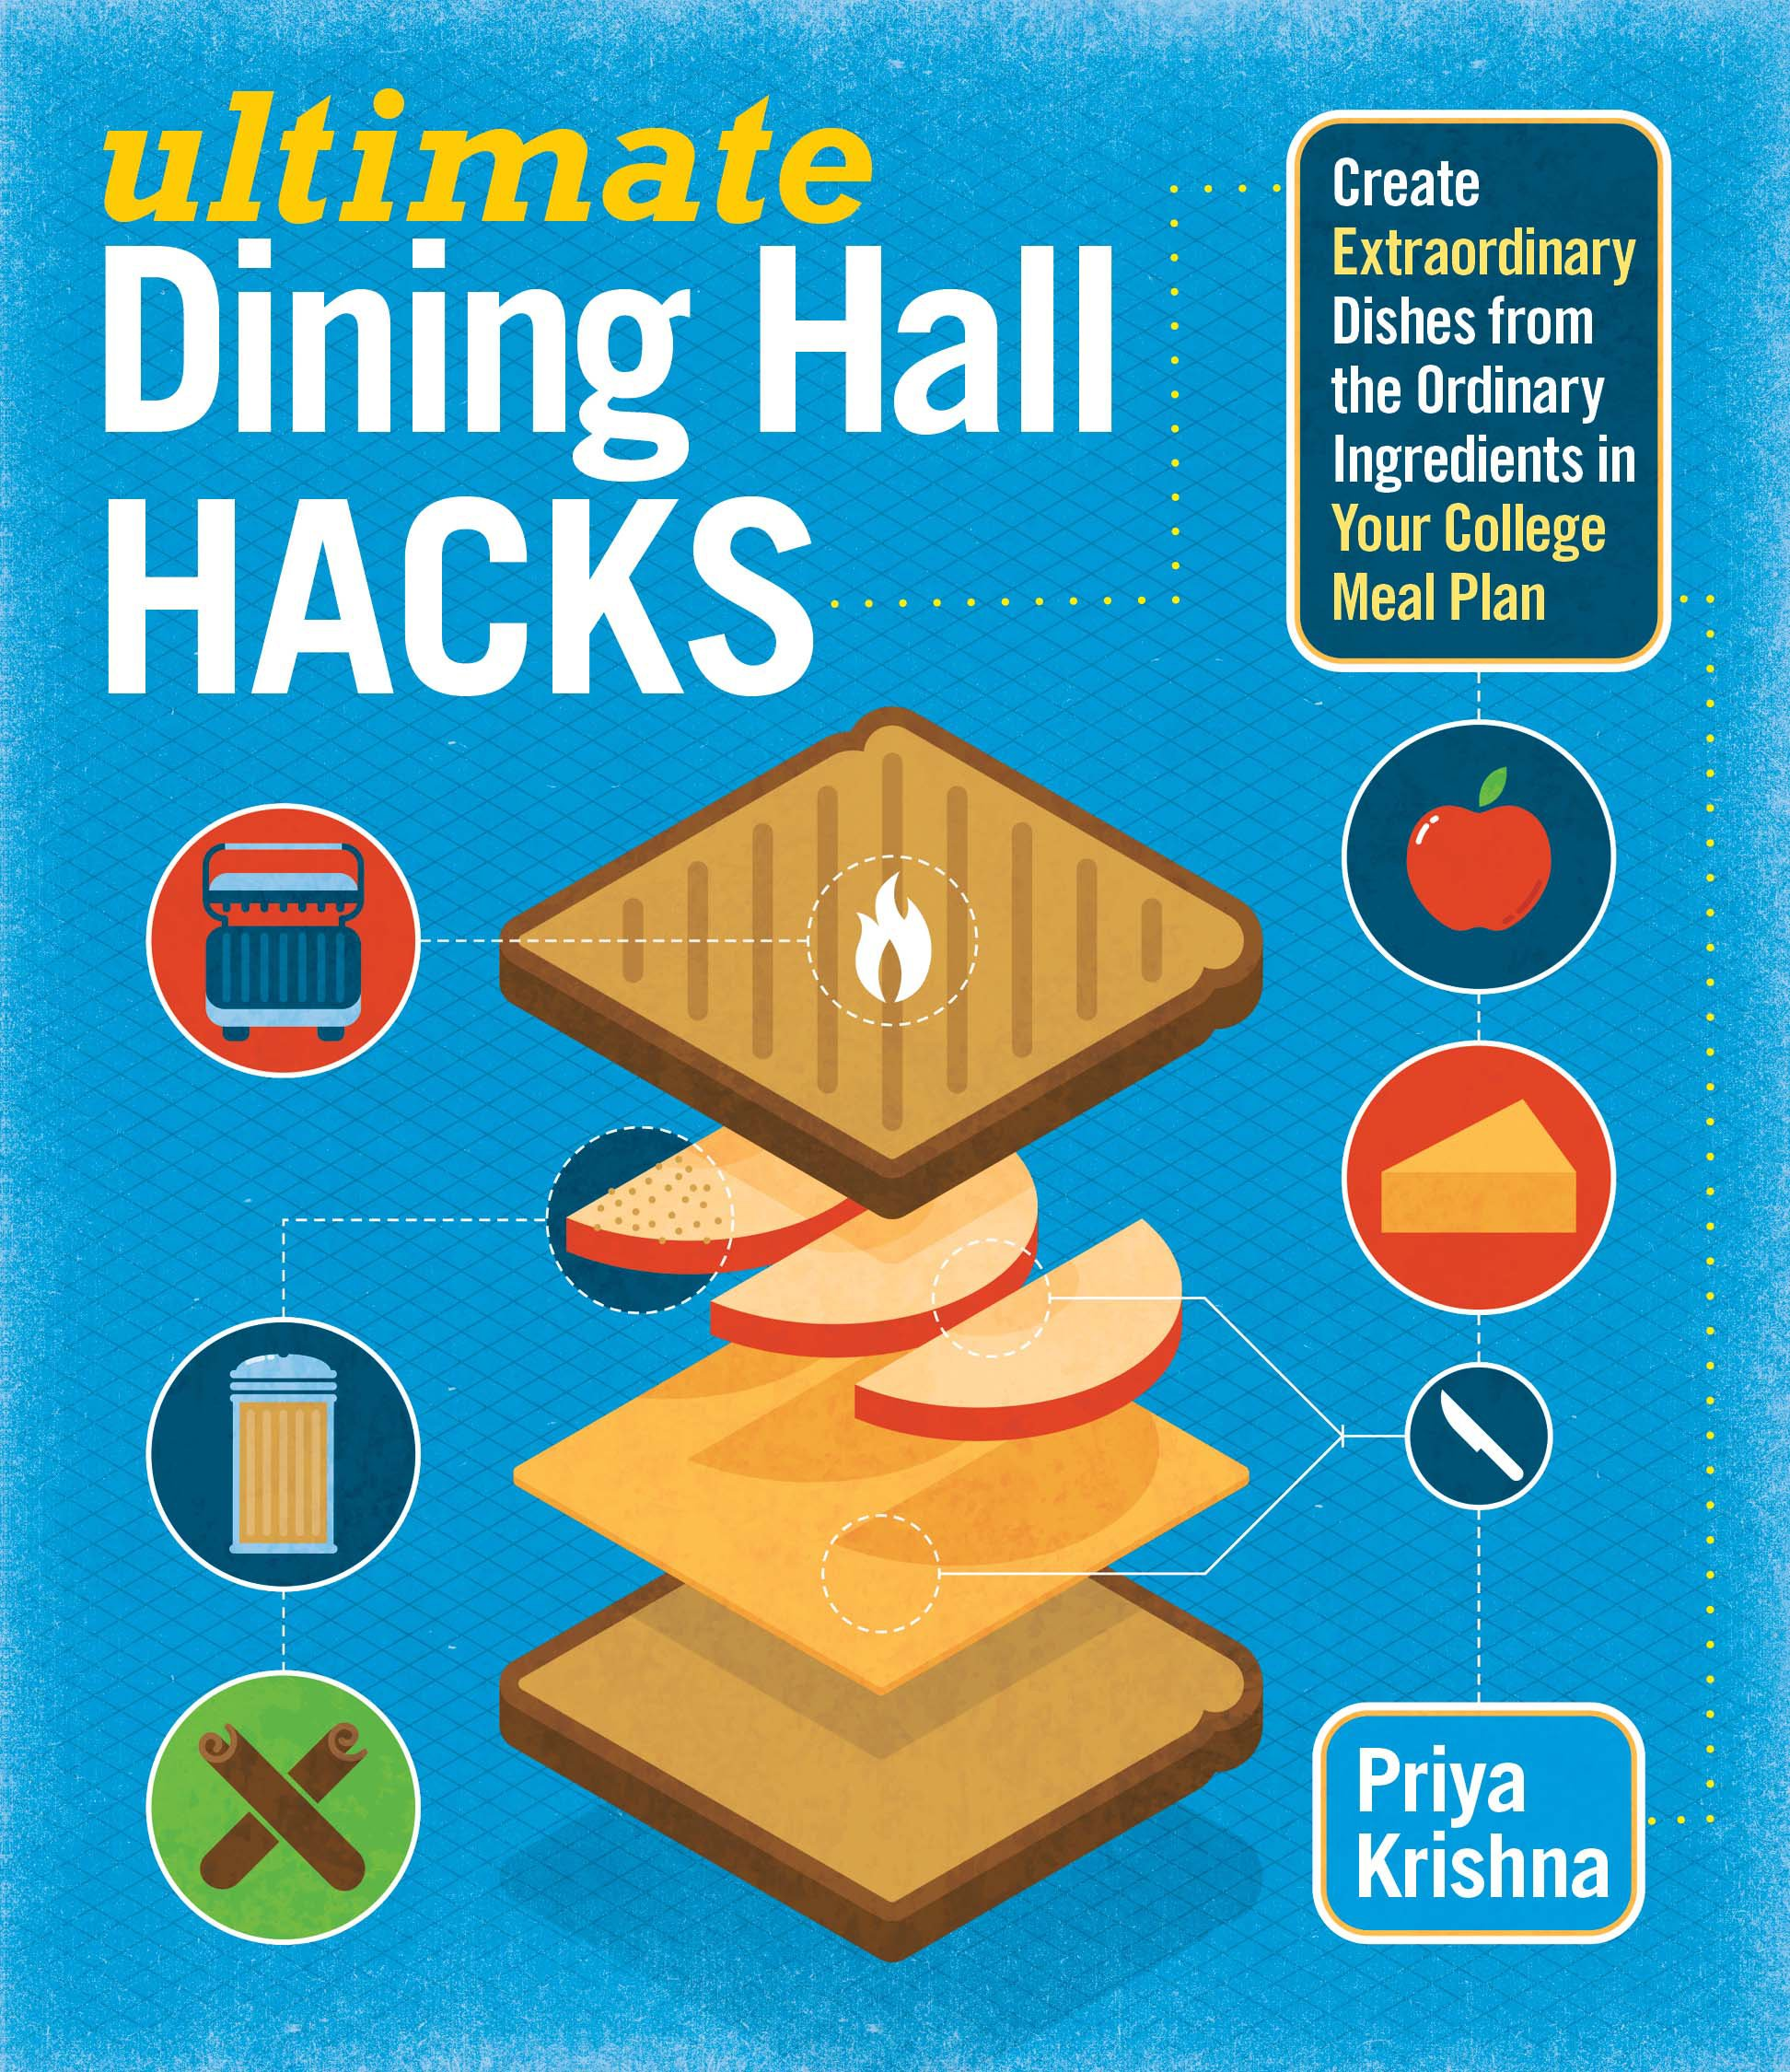 Ultimate dining hall hacks create extraordinary dishes from the ultimate dining hall hacks create extraordinary dishes from the ordinary ingredients in your college meal plan priya krishna 9781612124506 amazon ccuart Gallery